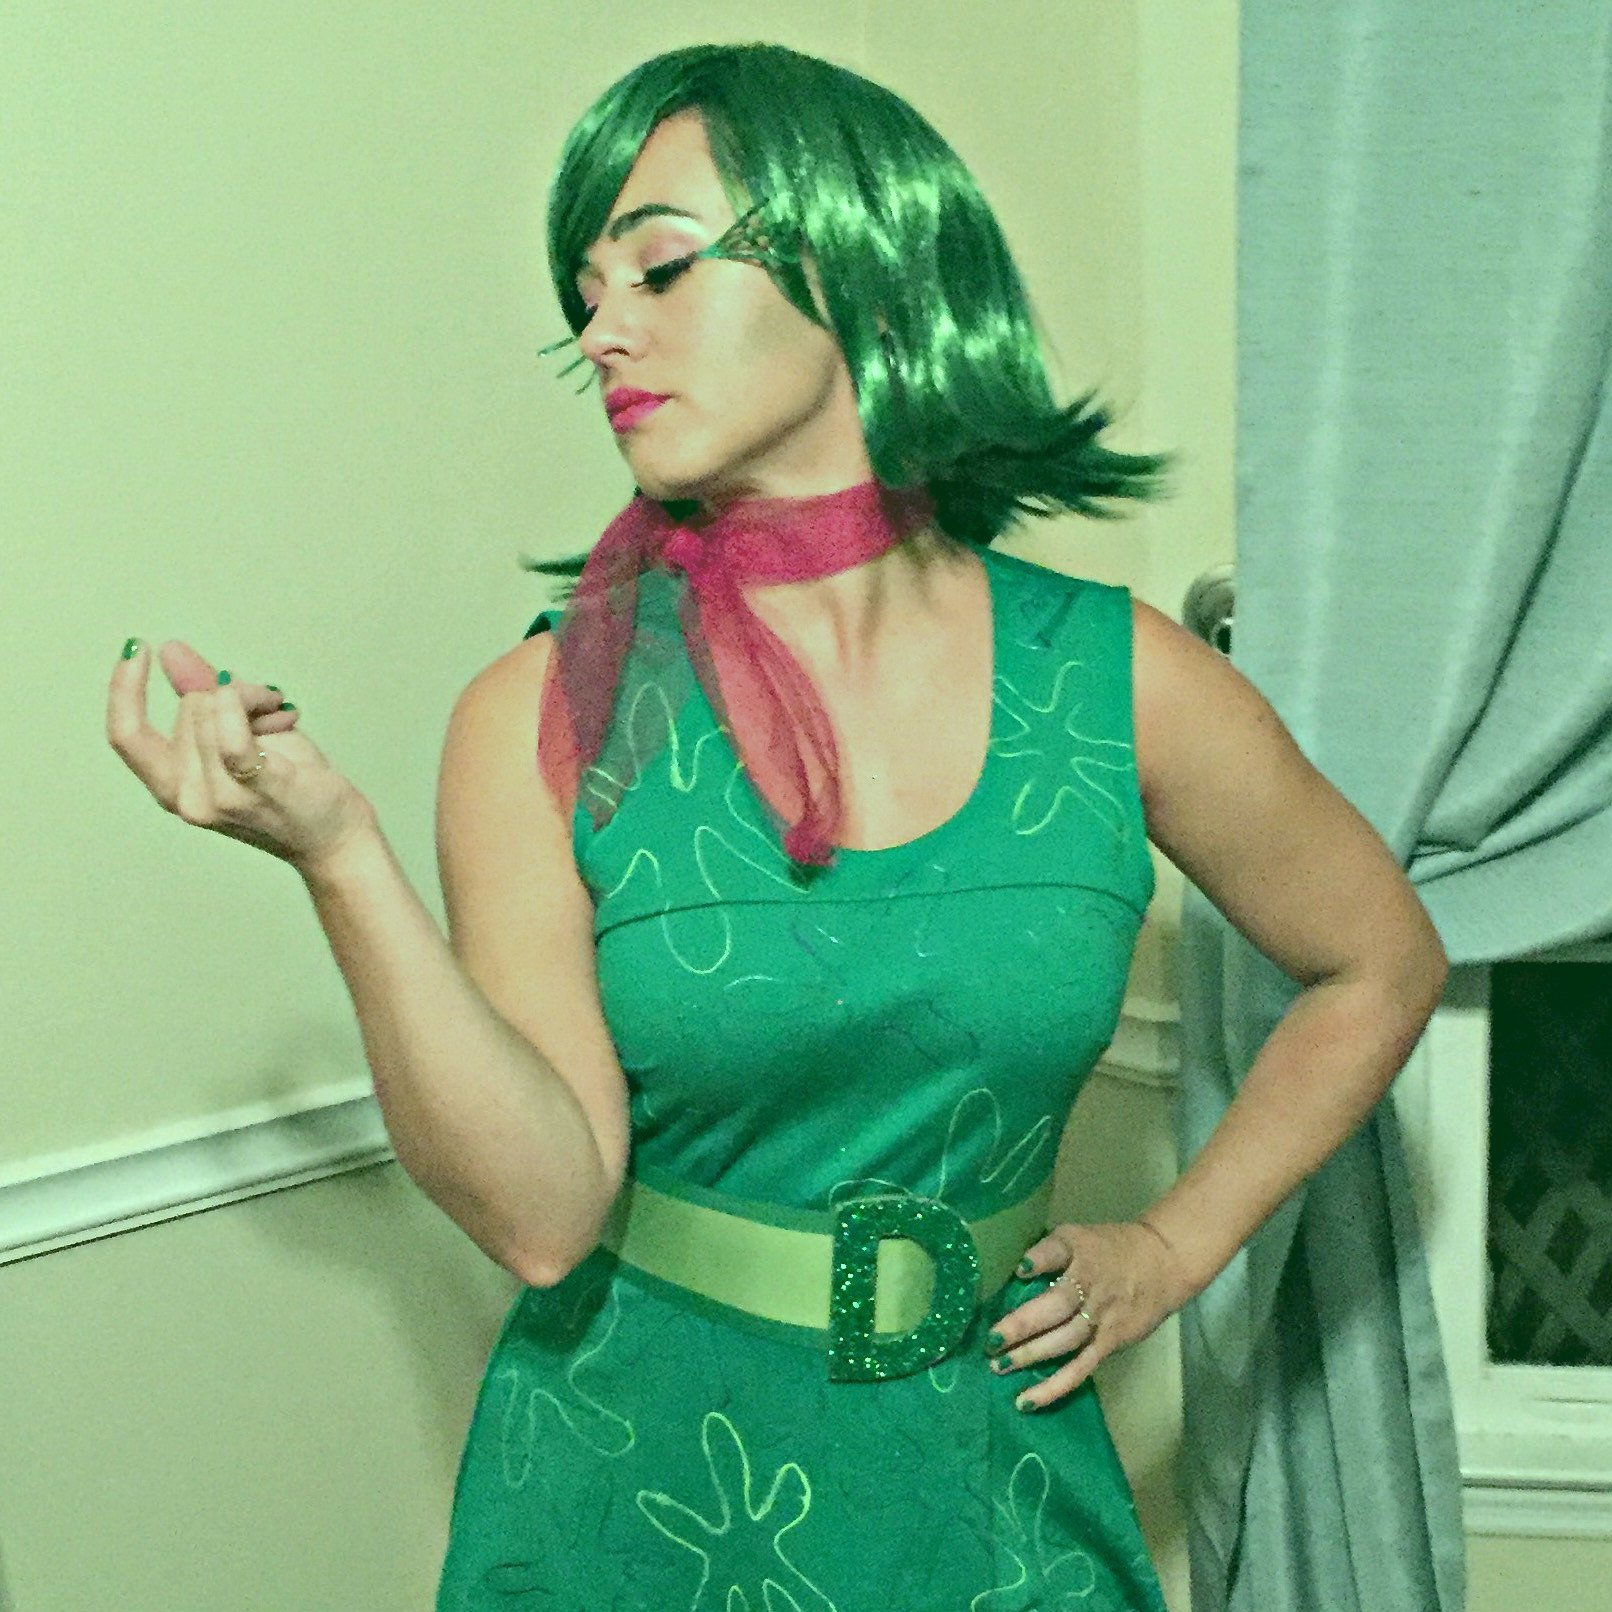 Diy Disgust Costume Inside Out Ugly Duckling House